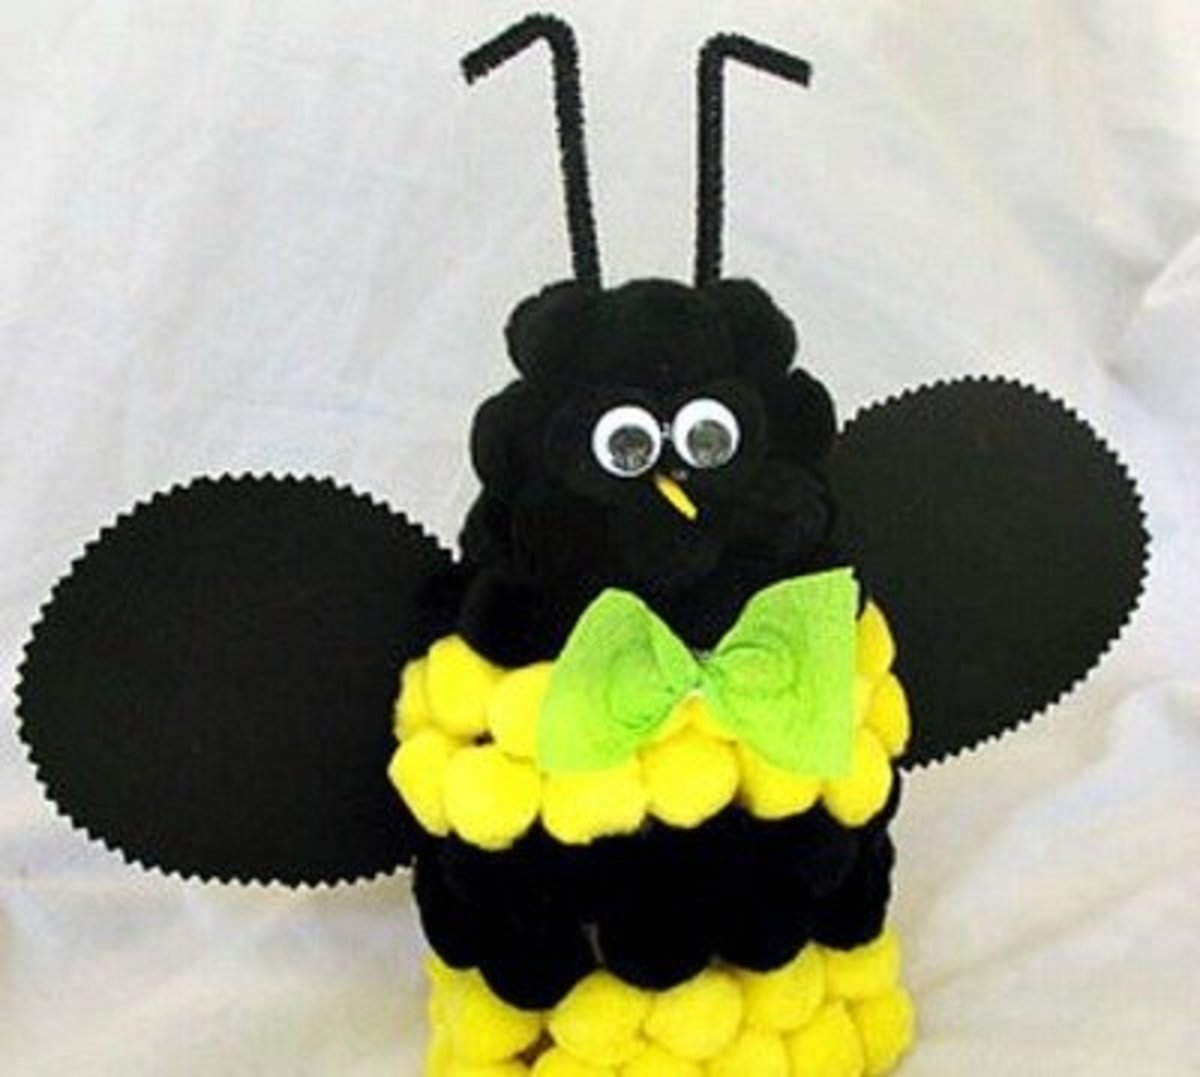 bumblebee-art-and-crafts